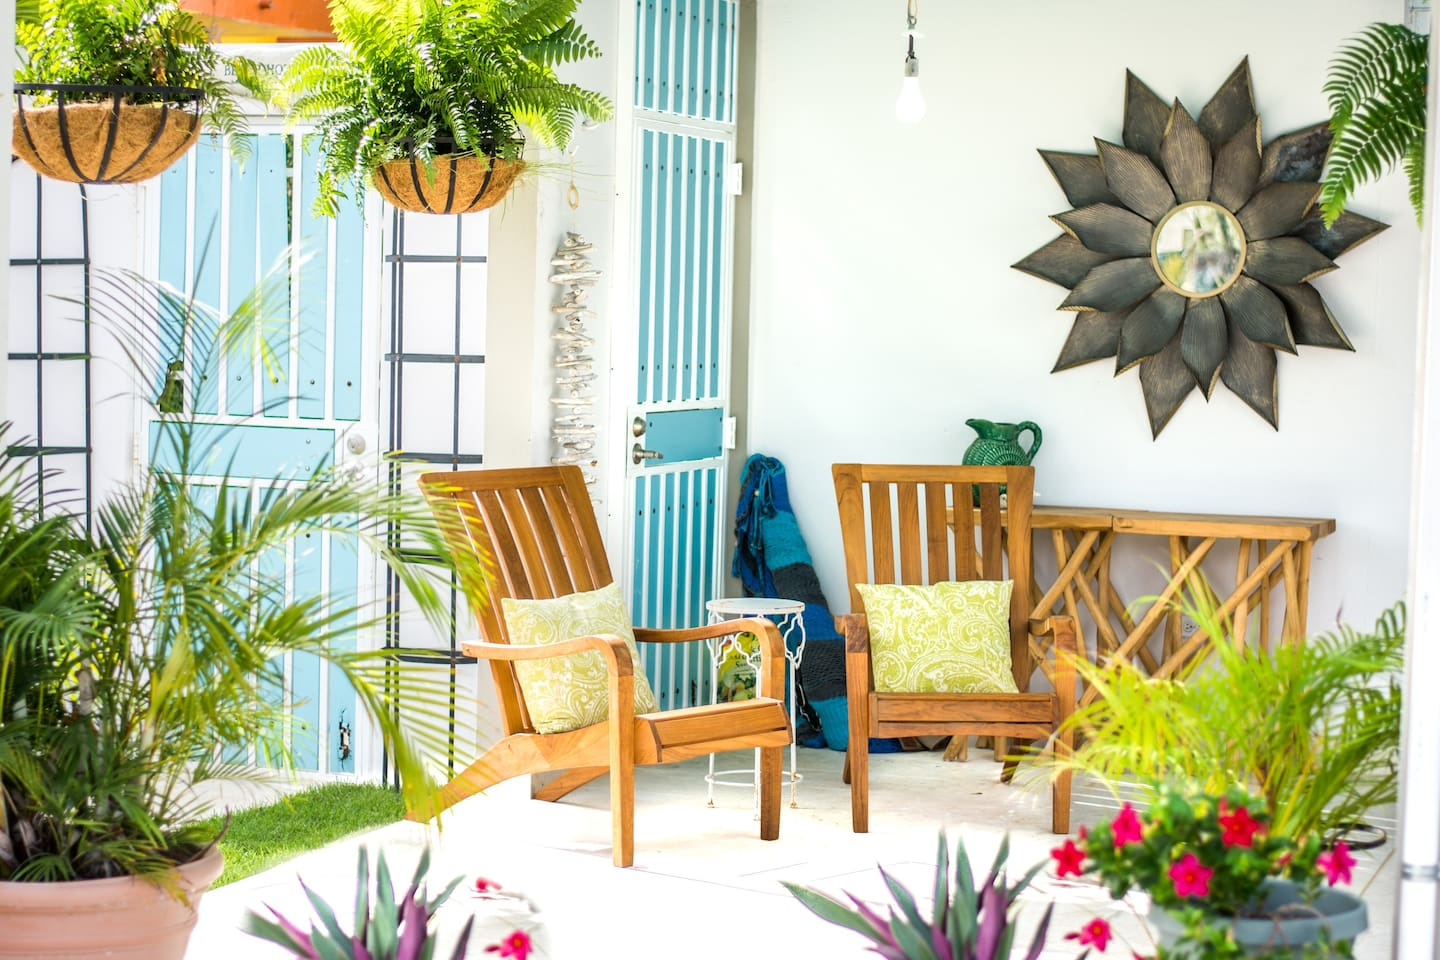 Sip coffee or relax in the hammock on the covered front porch any time of day.